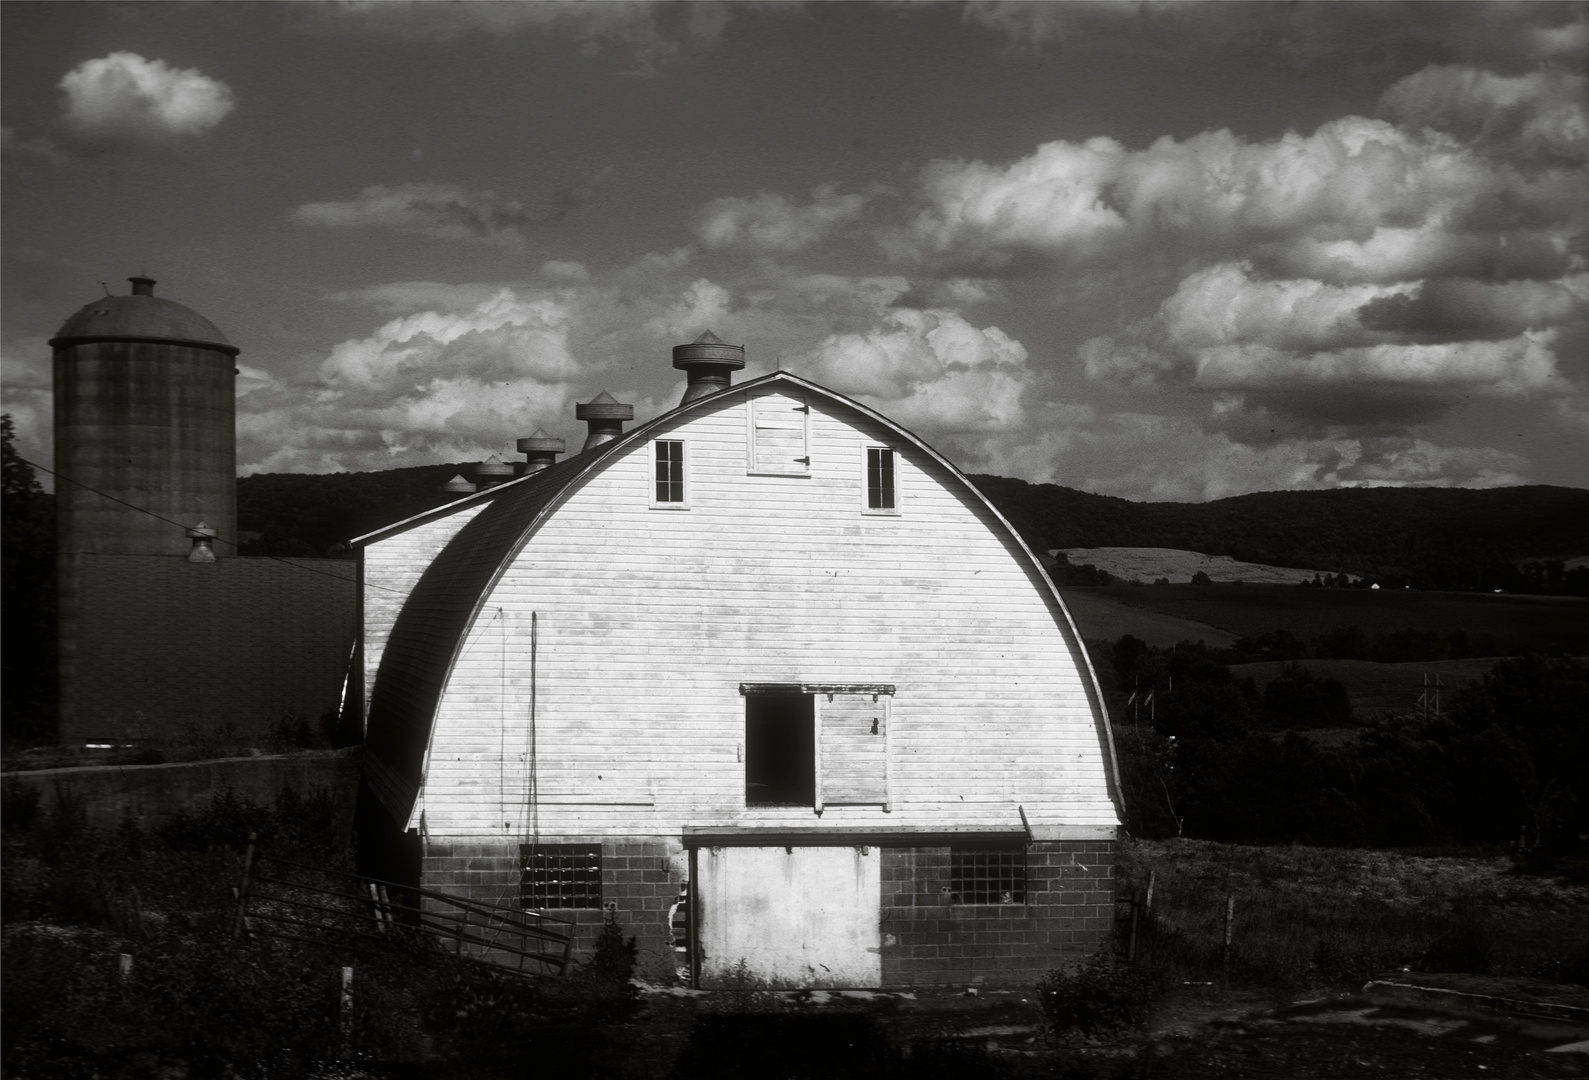 Barn, New York State